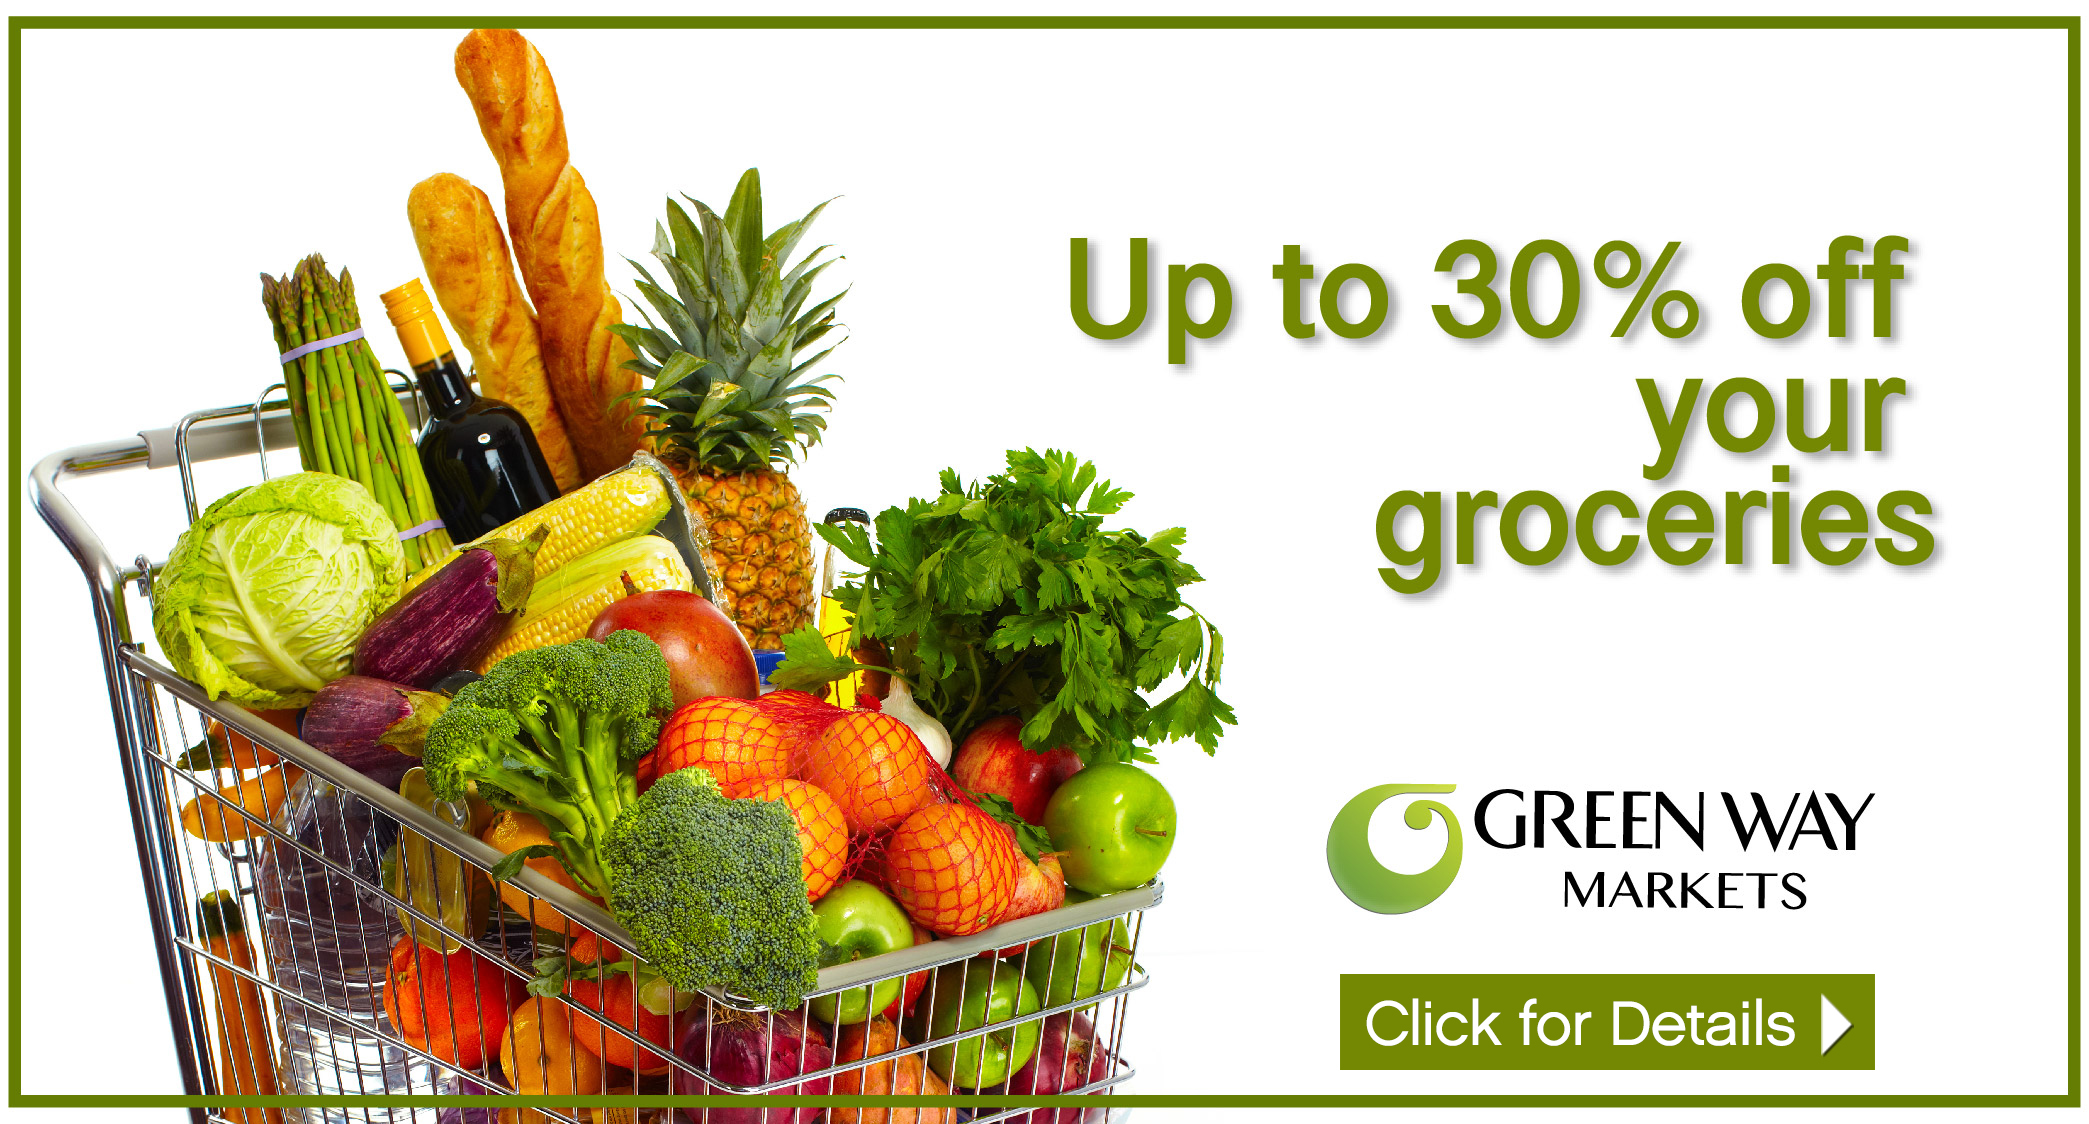 shopping cart with groceries, advertising 30% off sale